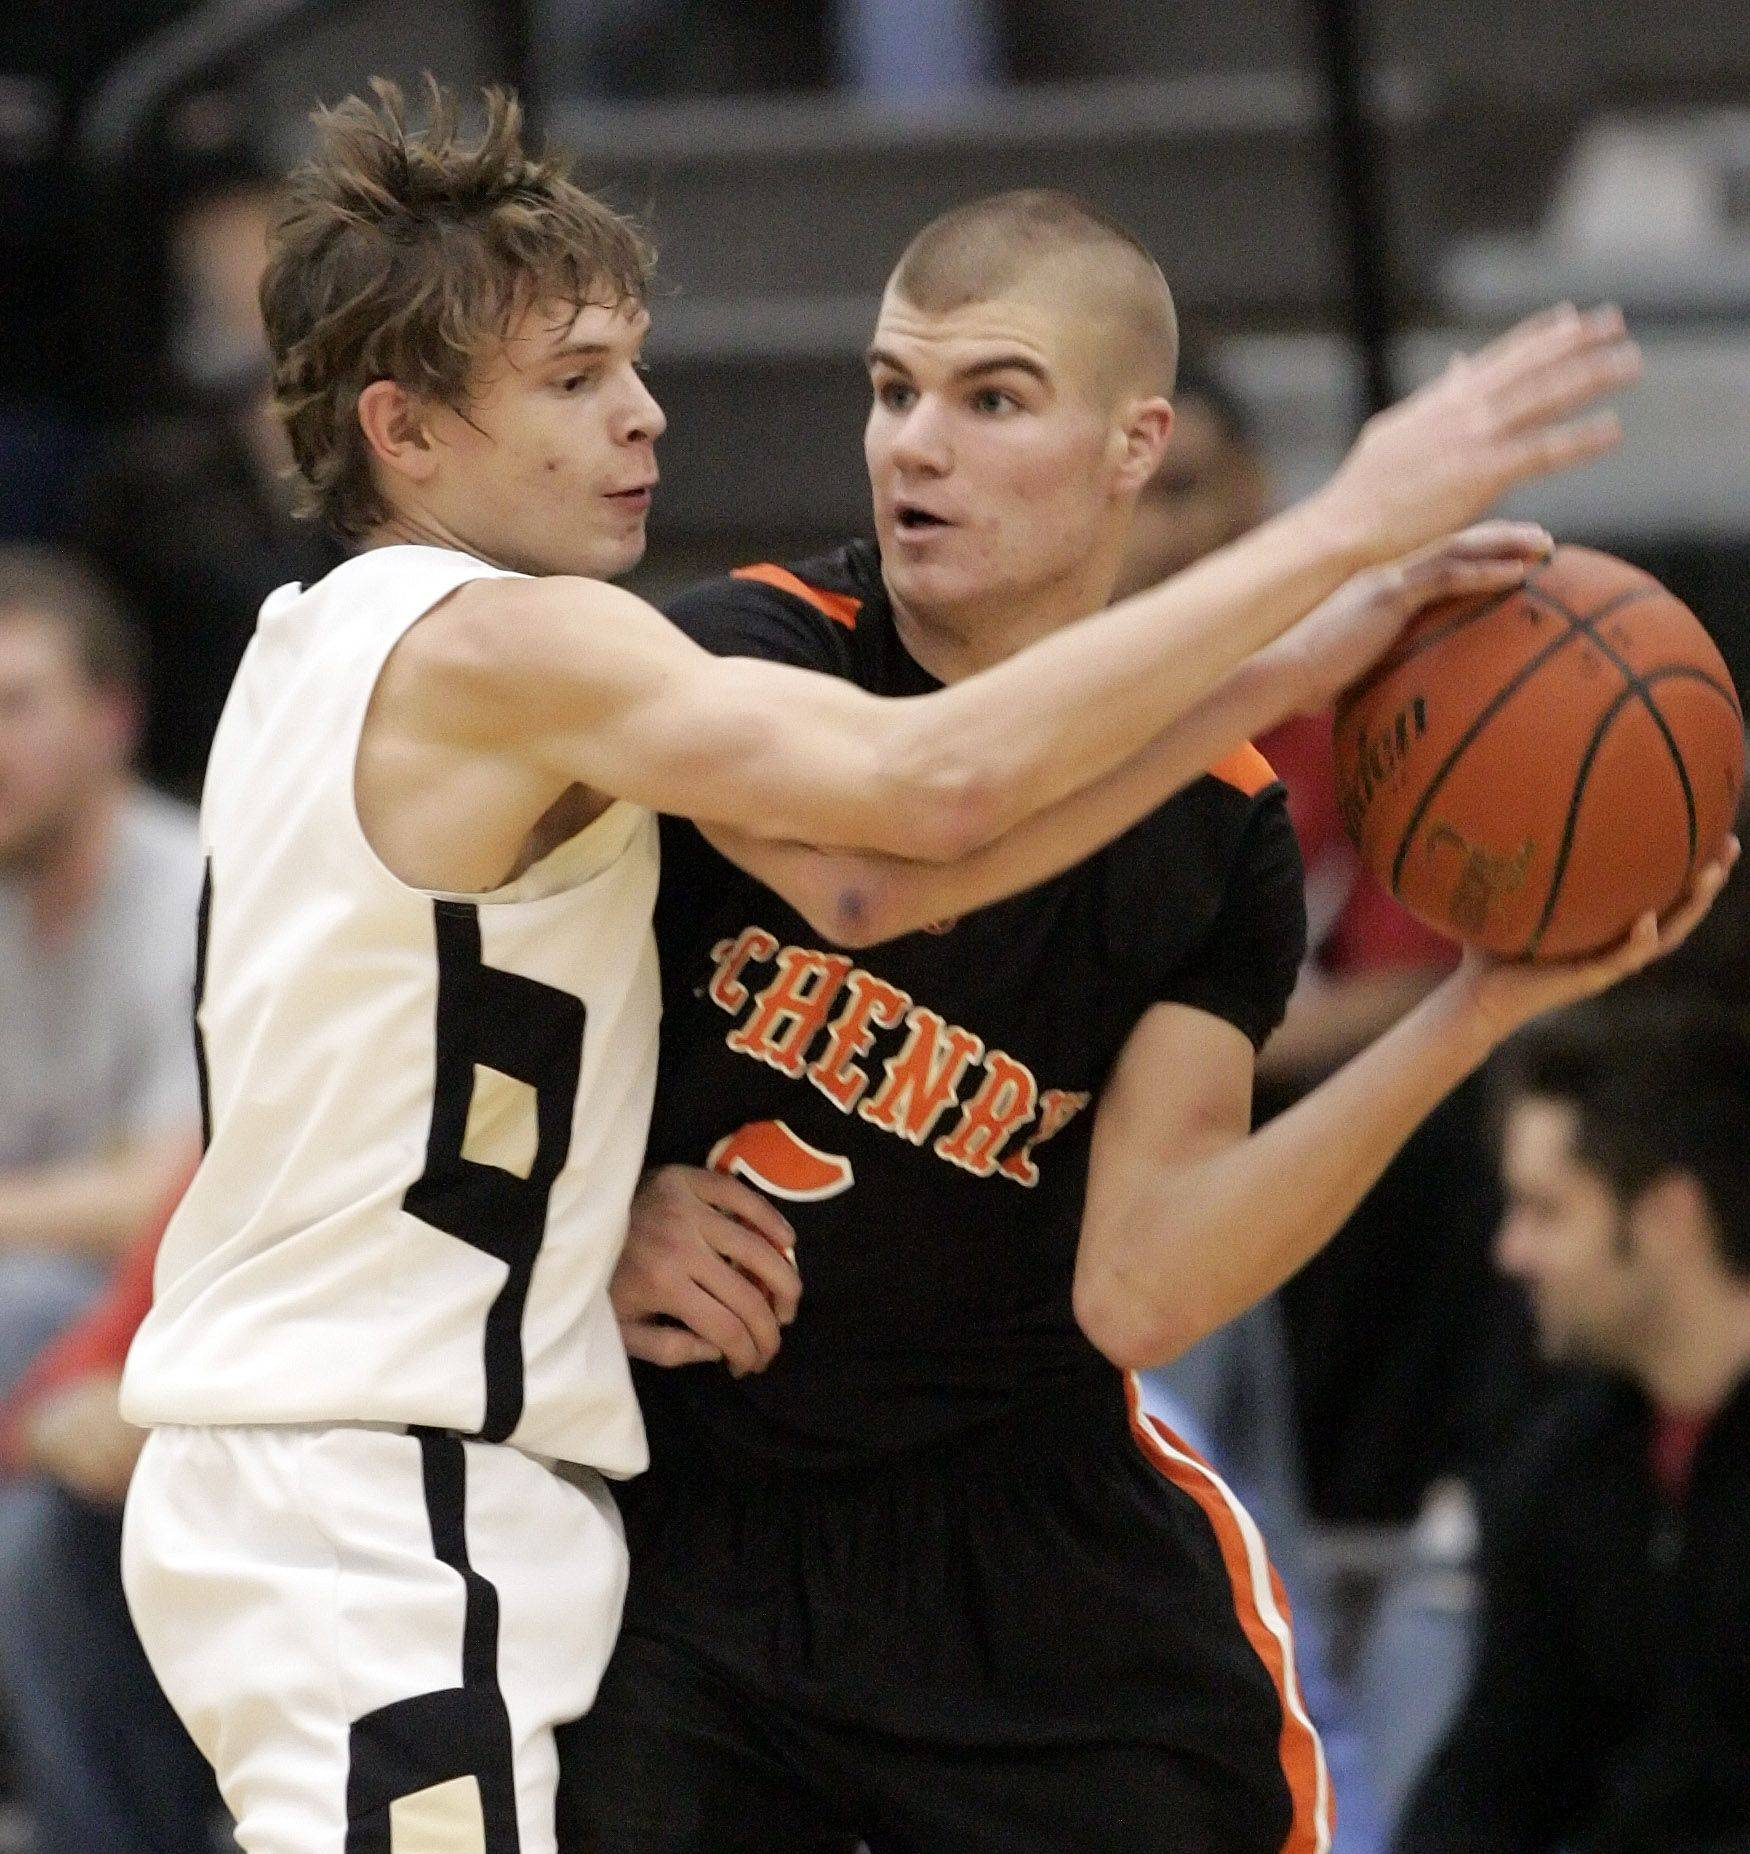 Grayslake North's Teddy Ludwick defends against McHenry's Pat Maher.